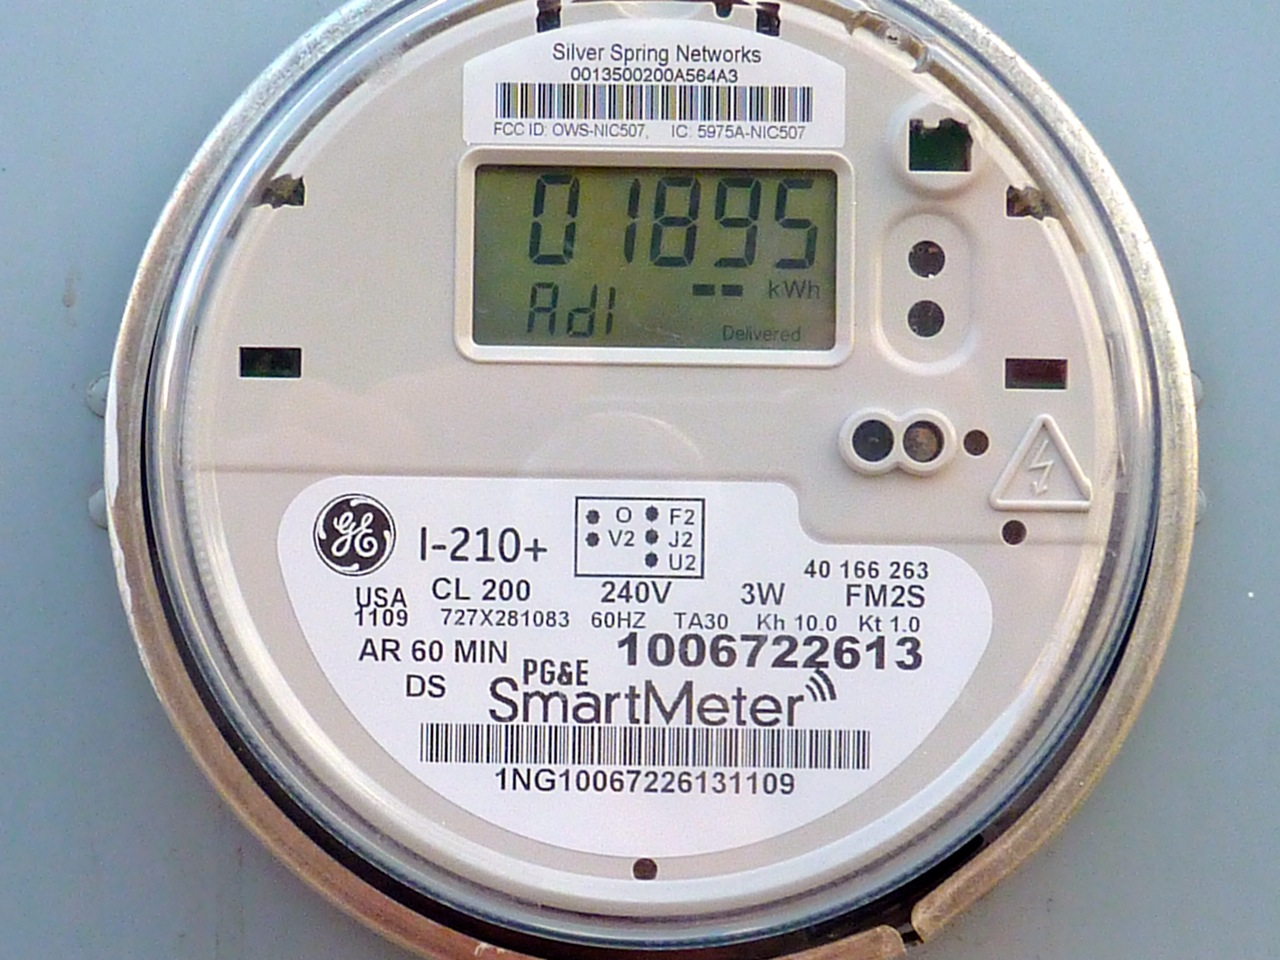 Pg Amp E Smart Meters Violate Fcc Rf Safety Conditions Emf